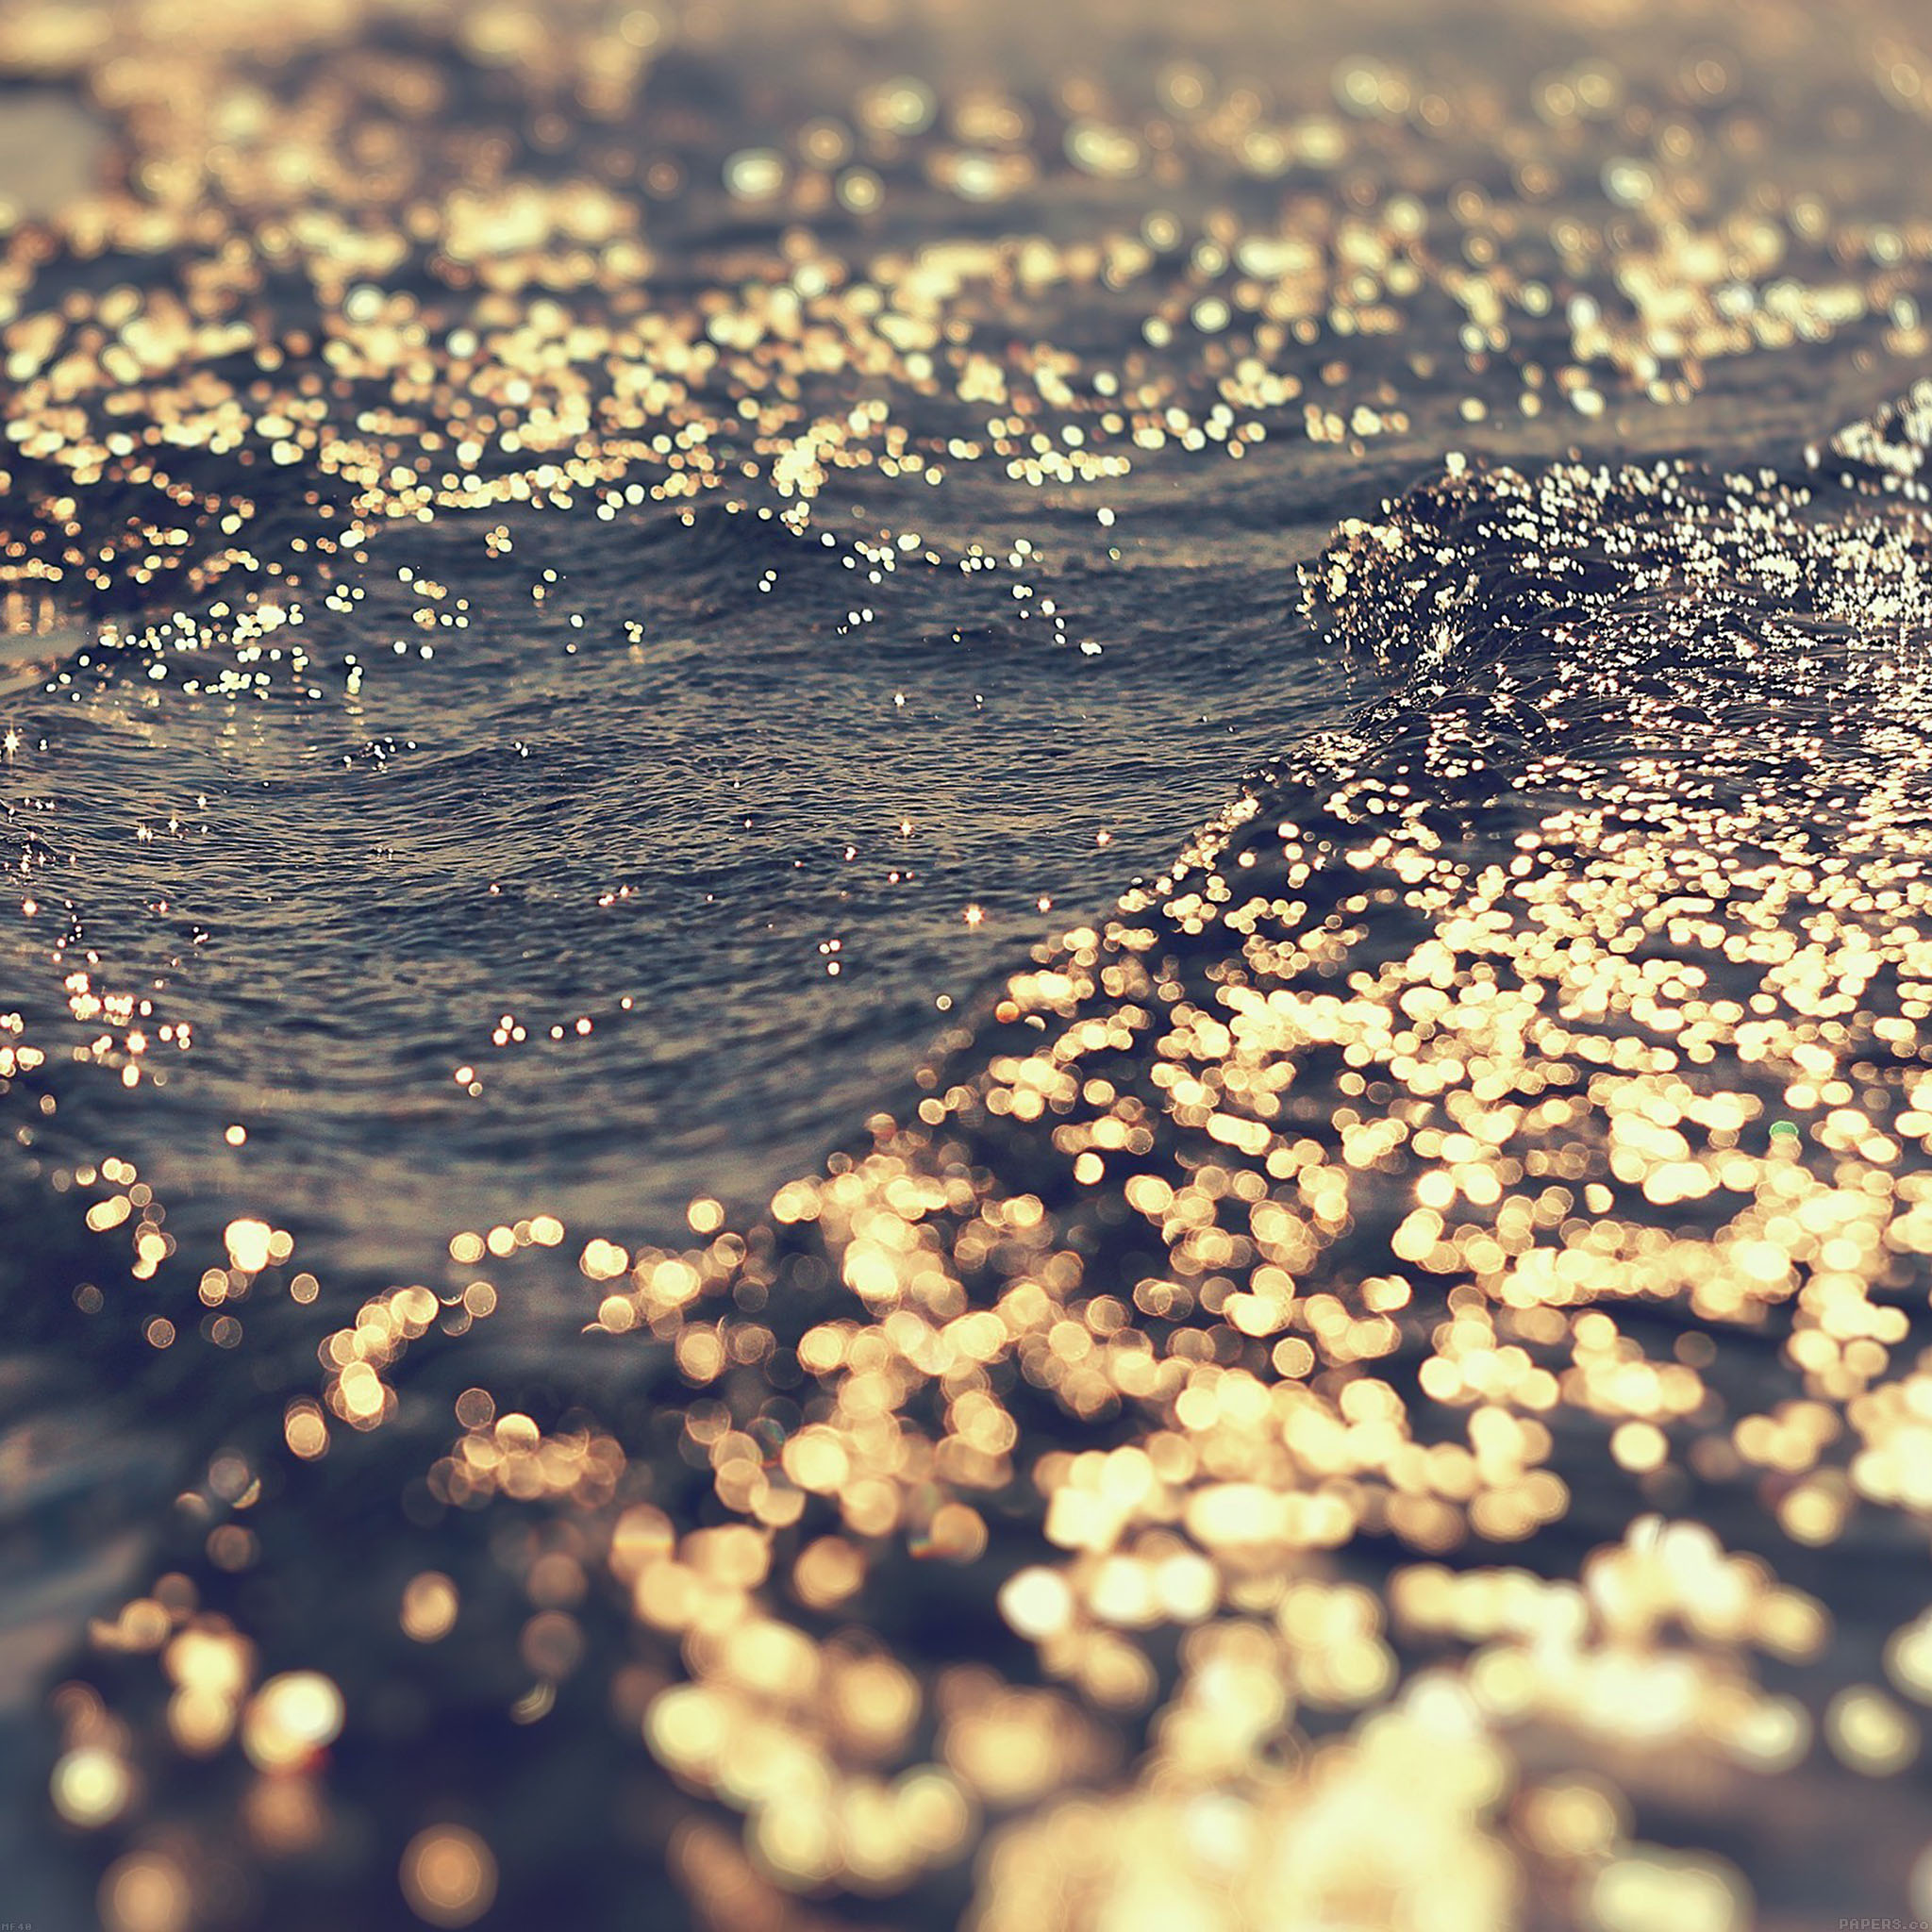 iphone wallpaper gold mf40 gold sea water sunset papers co 12464